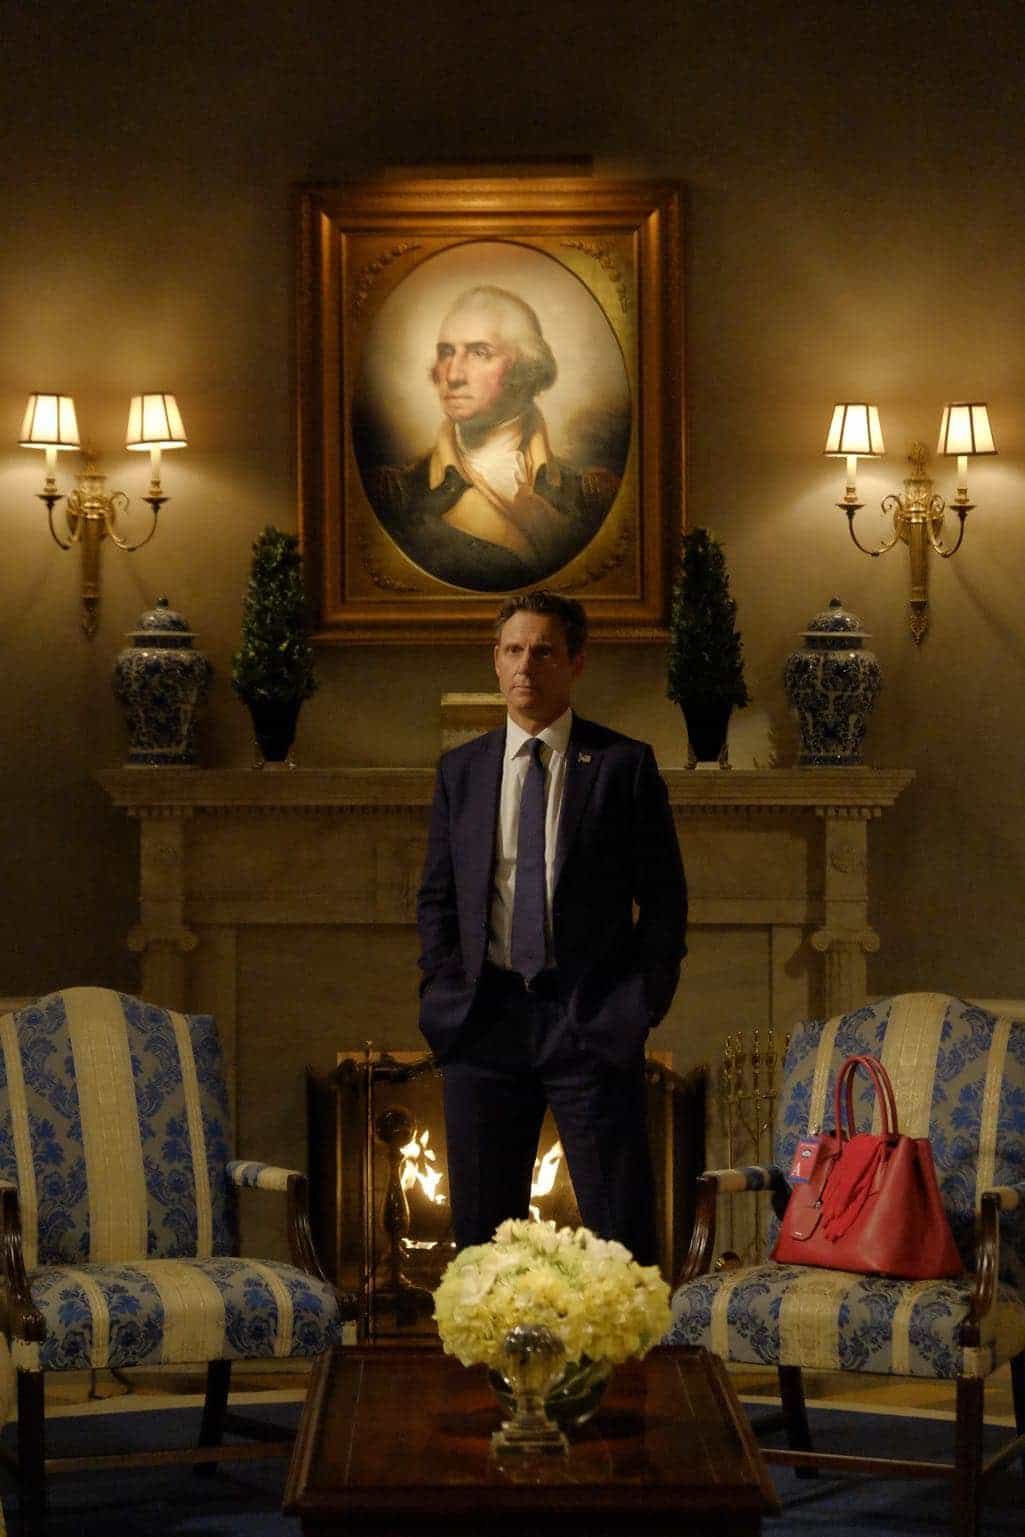 SCANDAL Season 6 Episode 1 Photos Survival of the Fittest 23